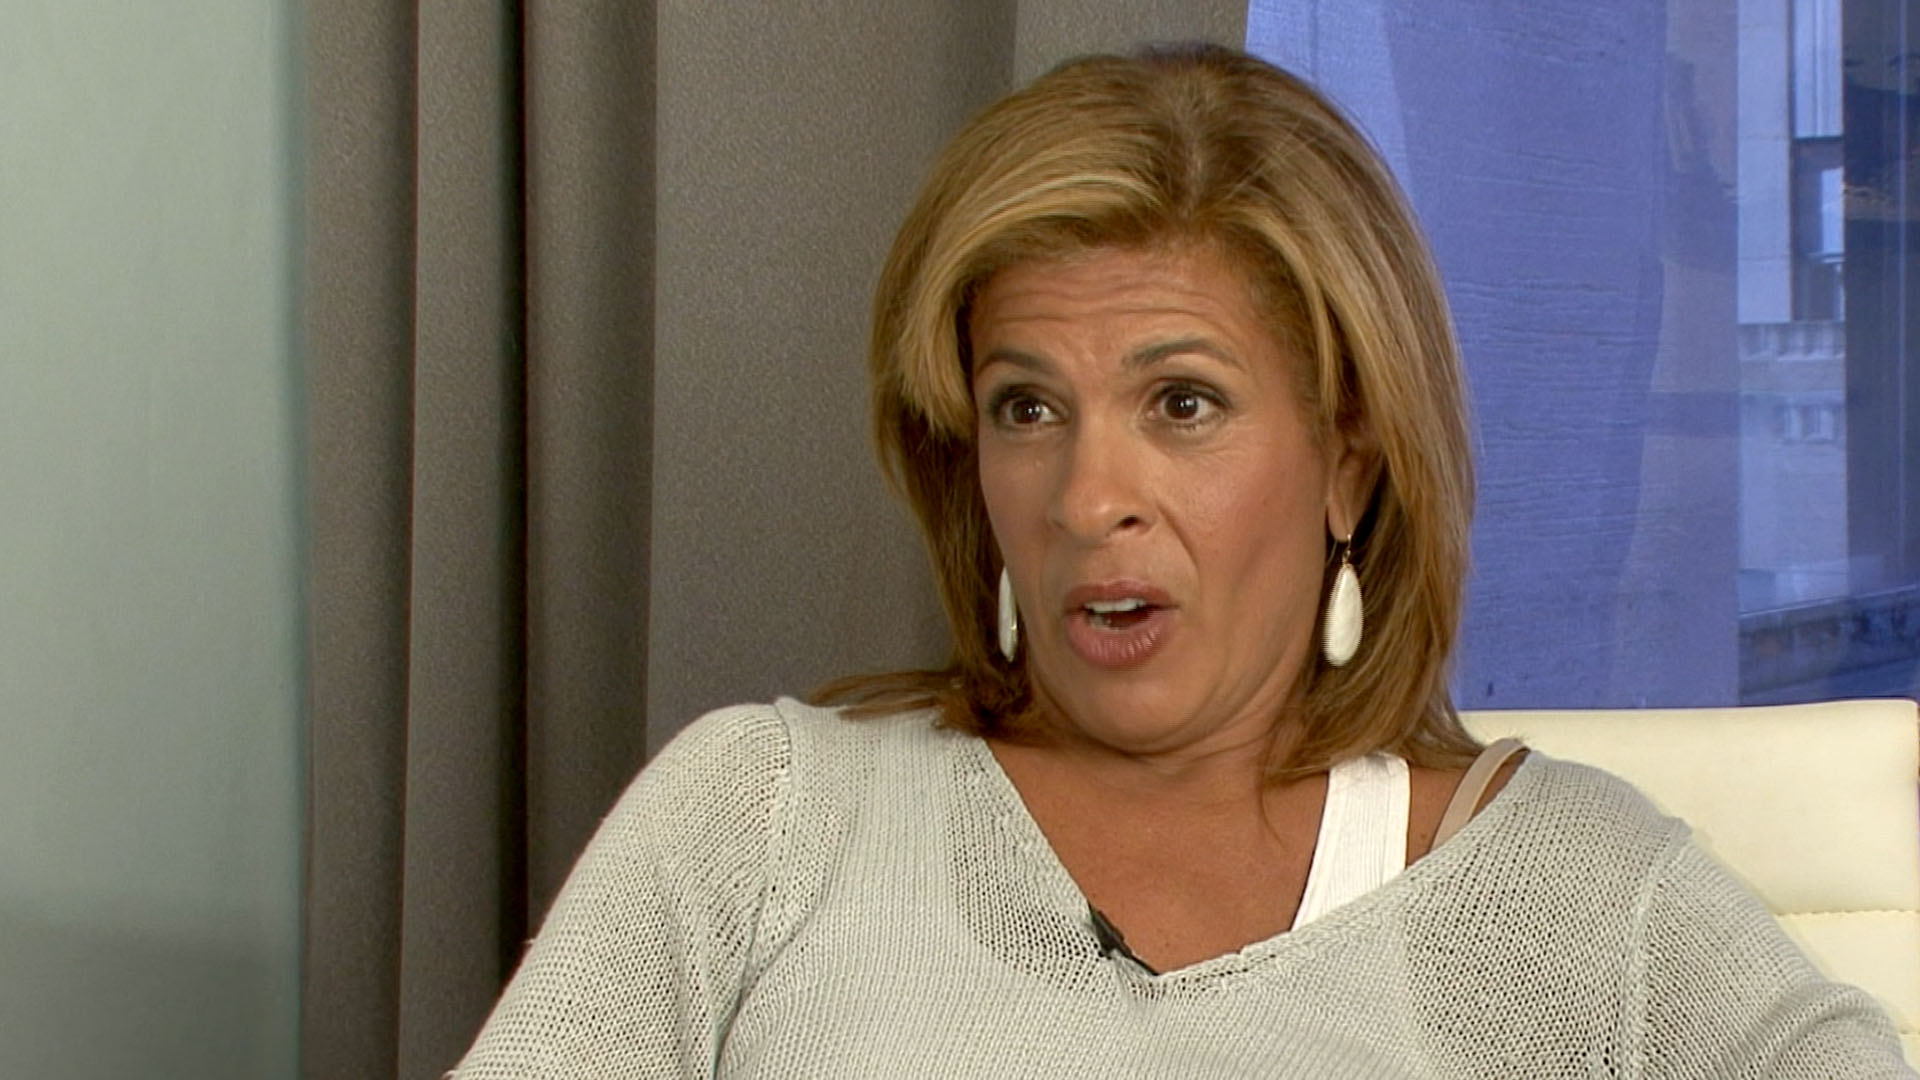 Hoda Kotb On Growing Up With A Unique Name